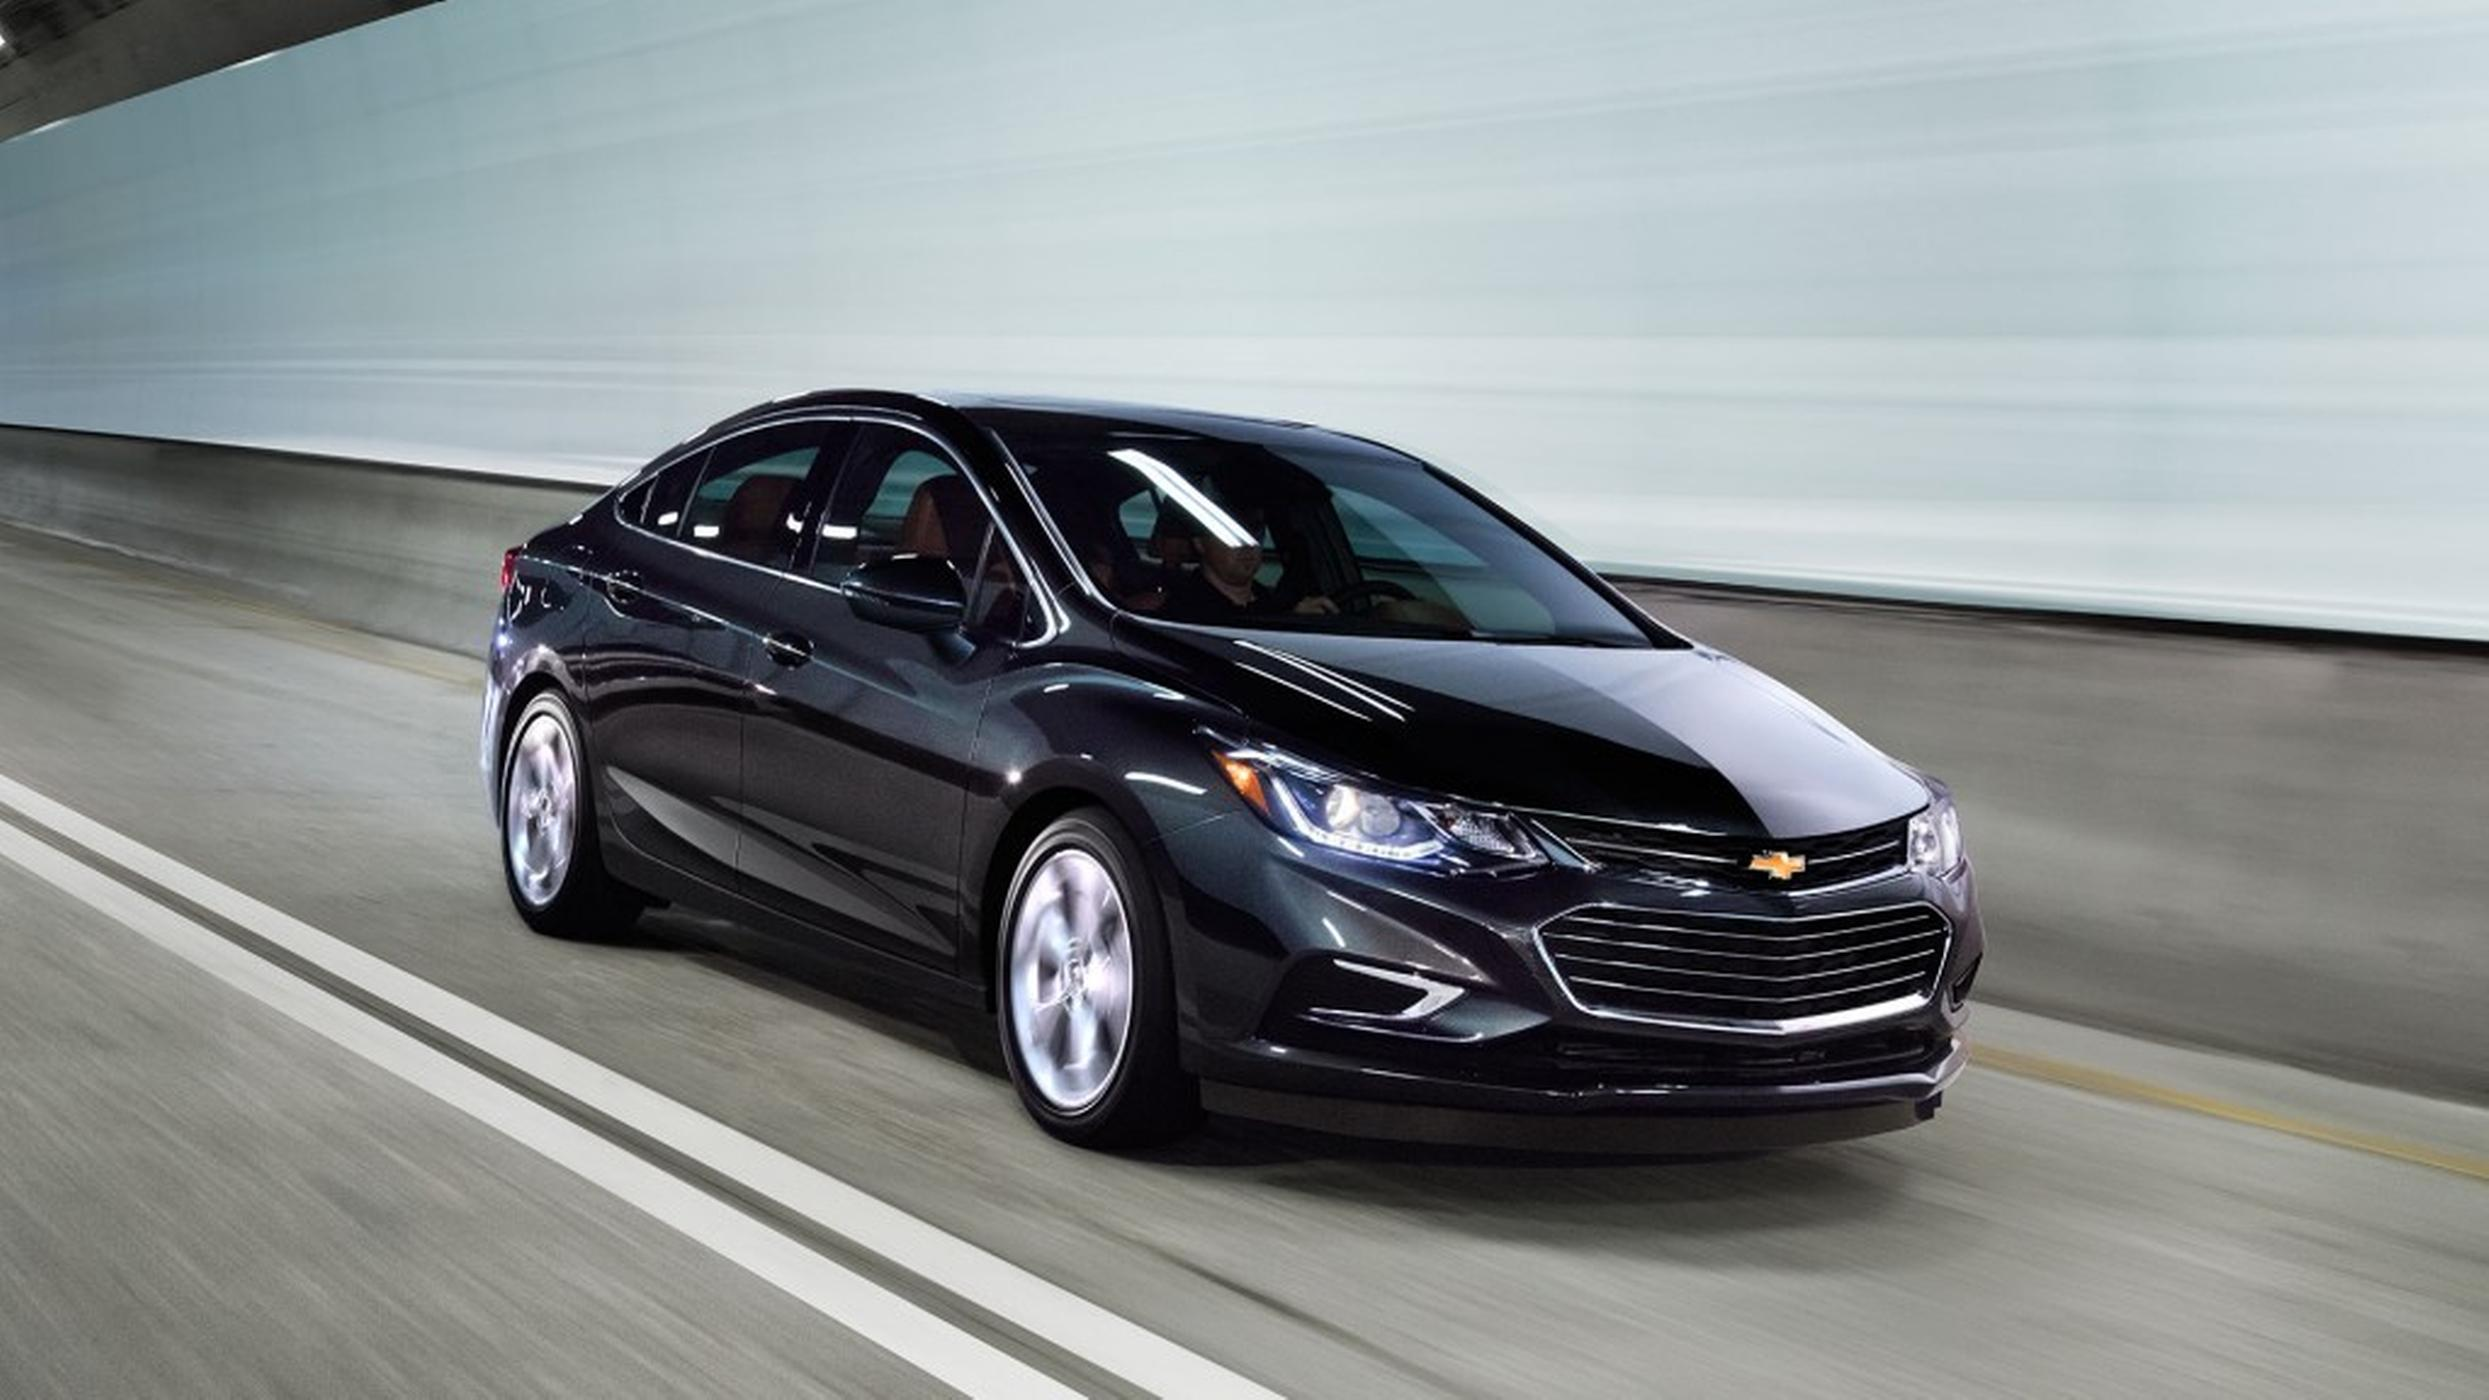 A black 2017 Chevy Cruze is driving on a highway near Cincinnati, OH.